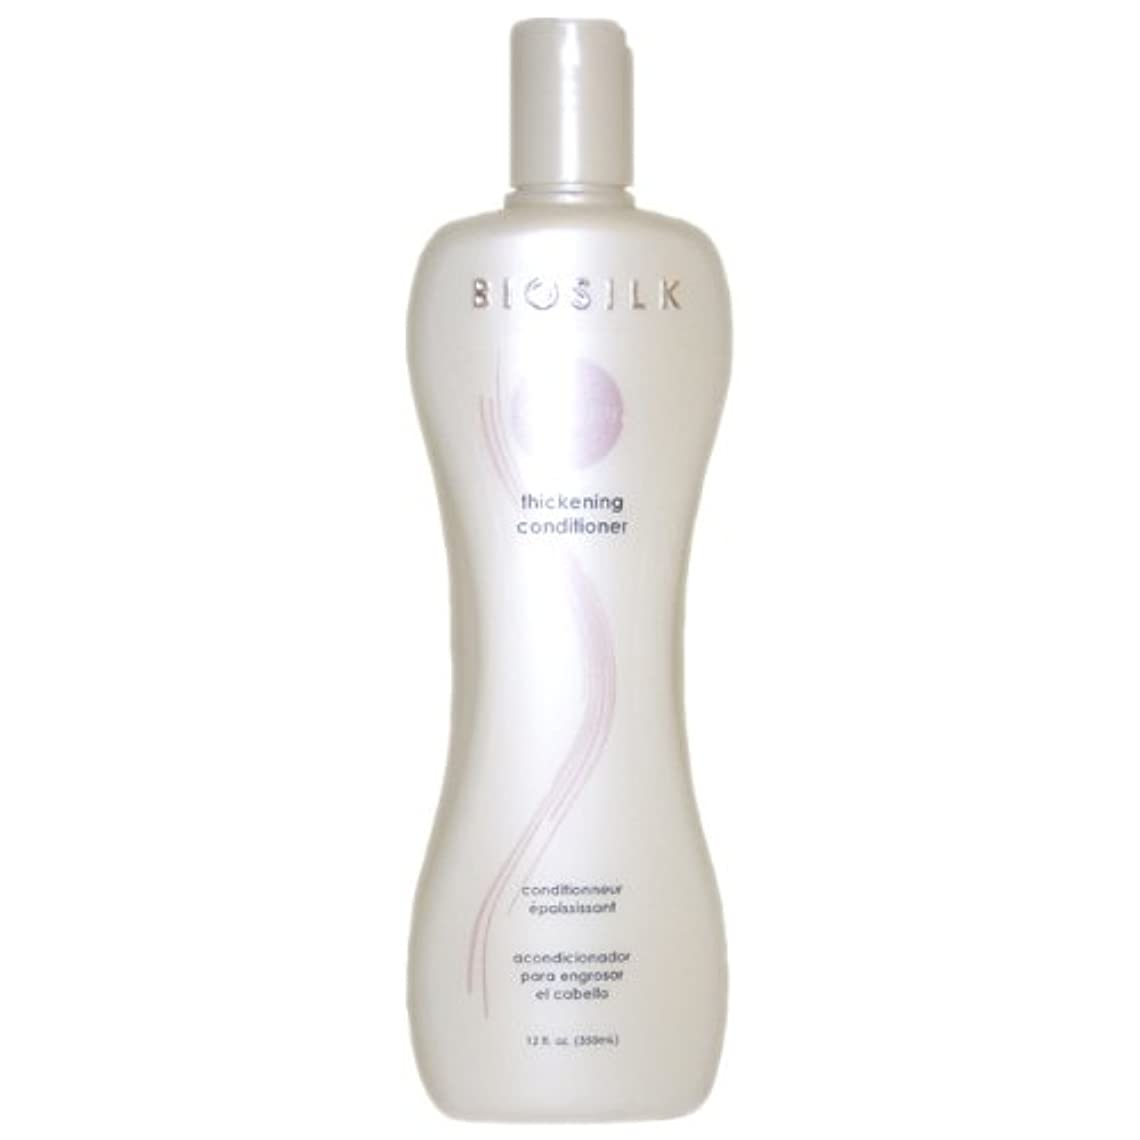 鼻医薬ワイドBiosilk Thickening Conditioner 350 ml (12 oz.) (並行輸入品)